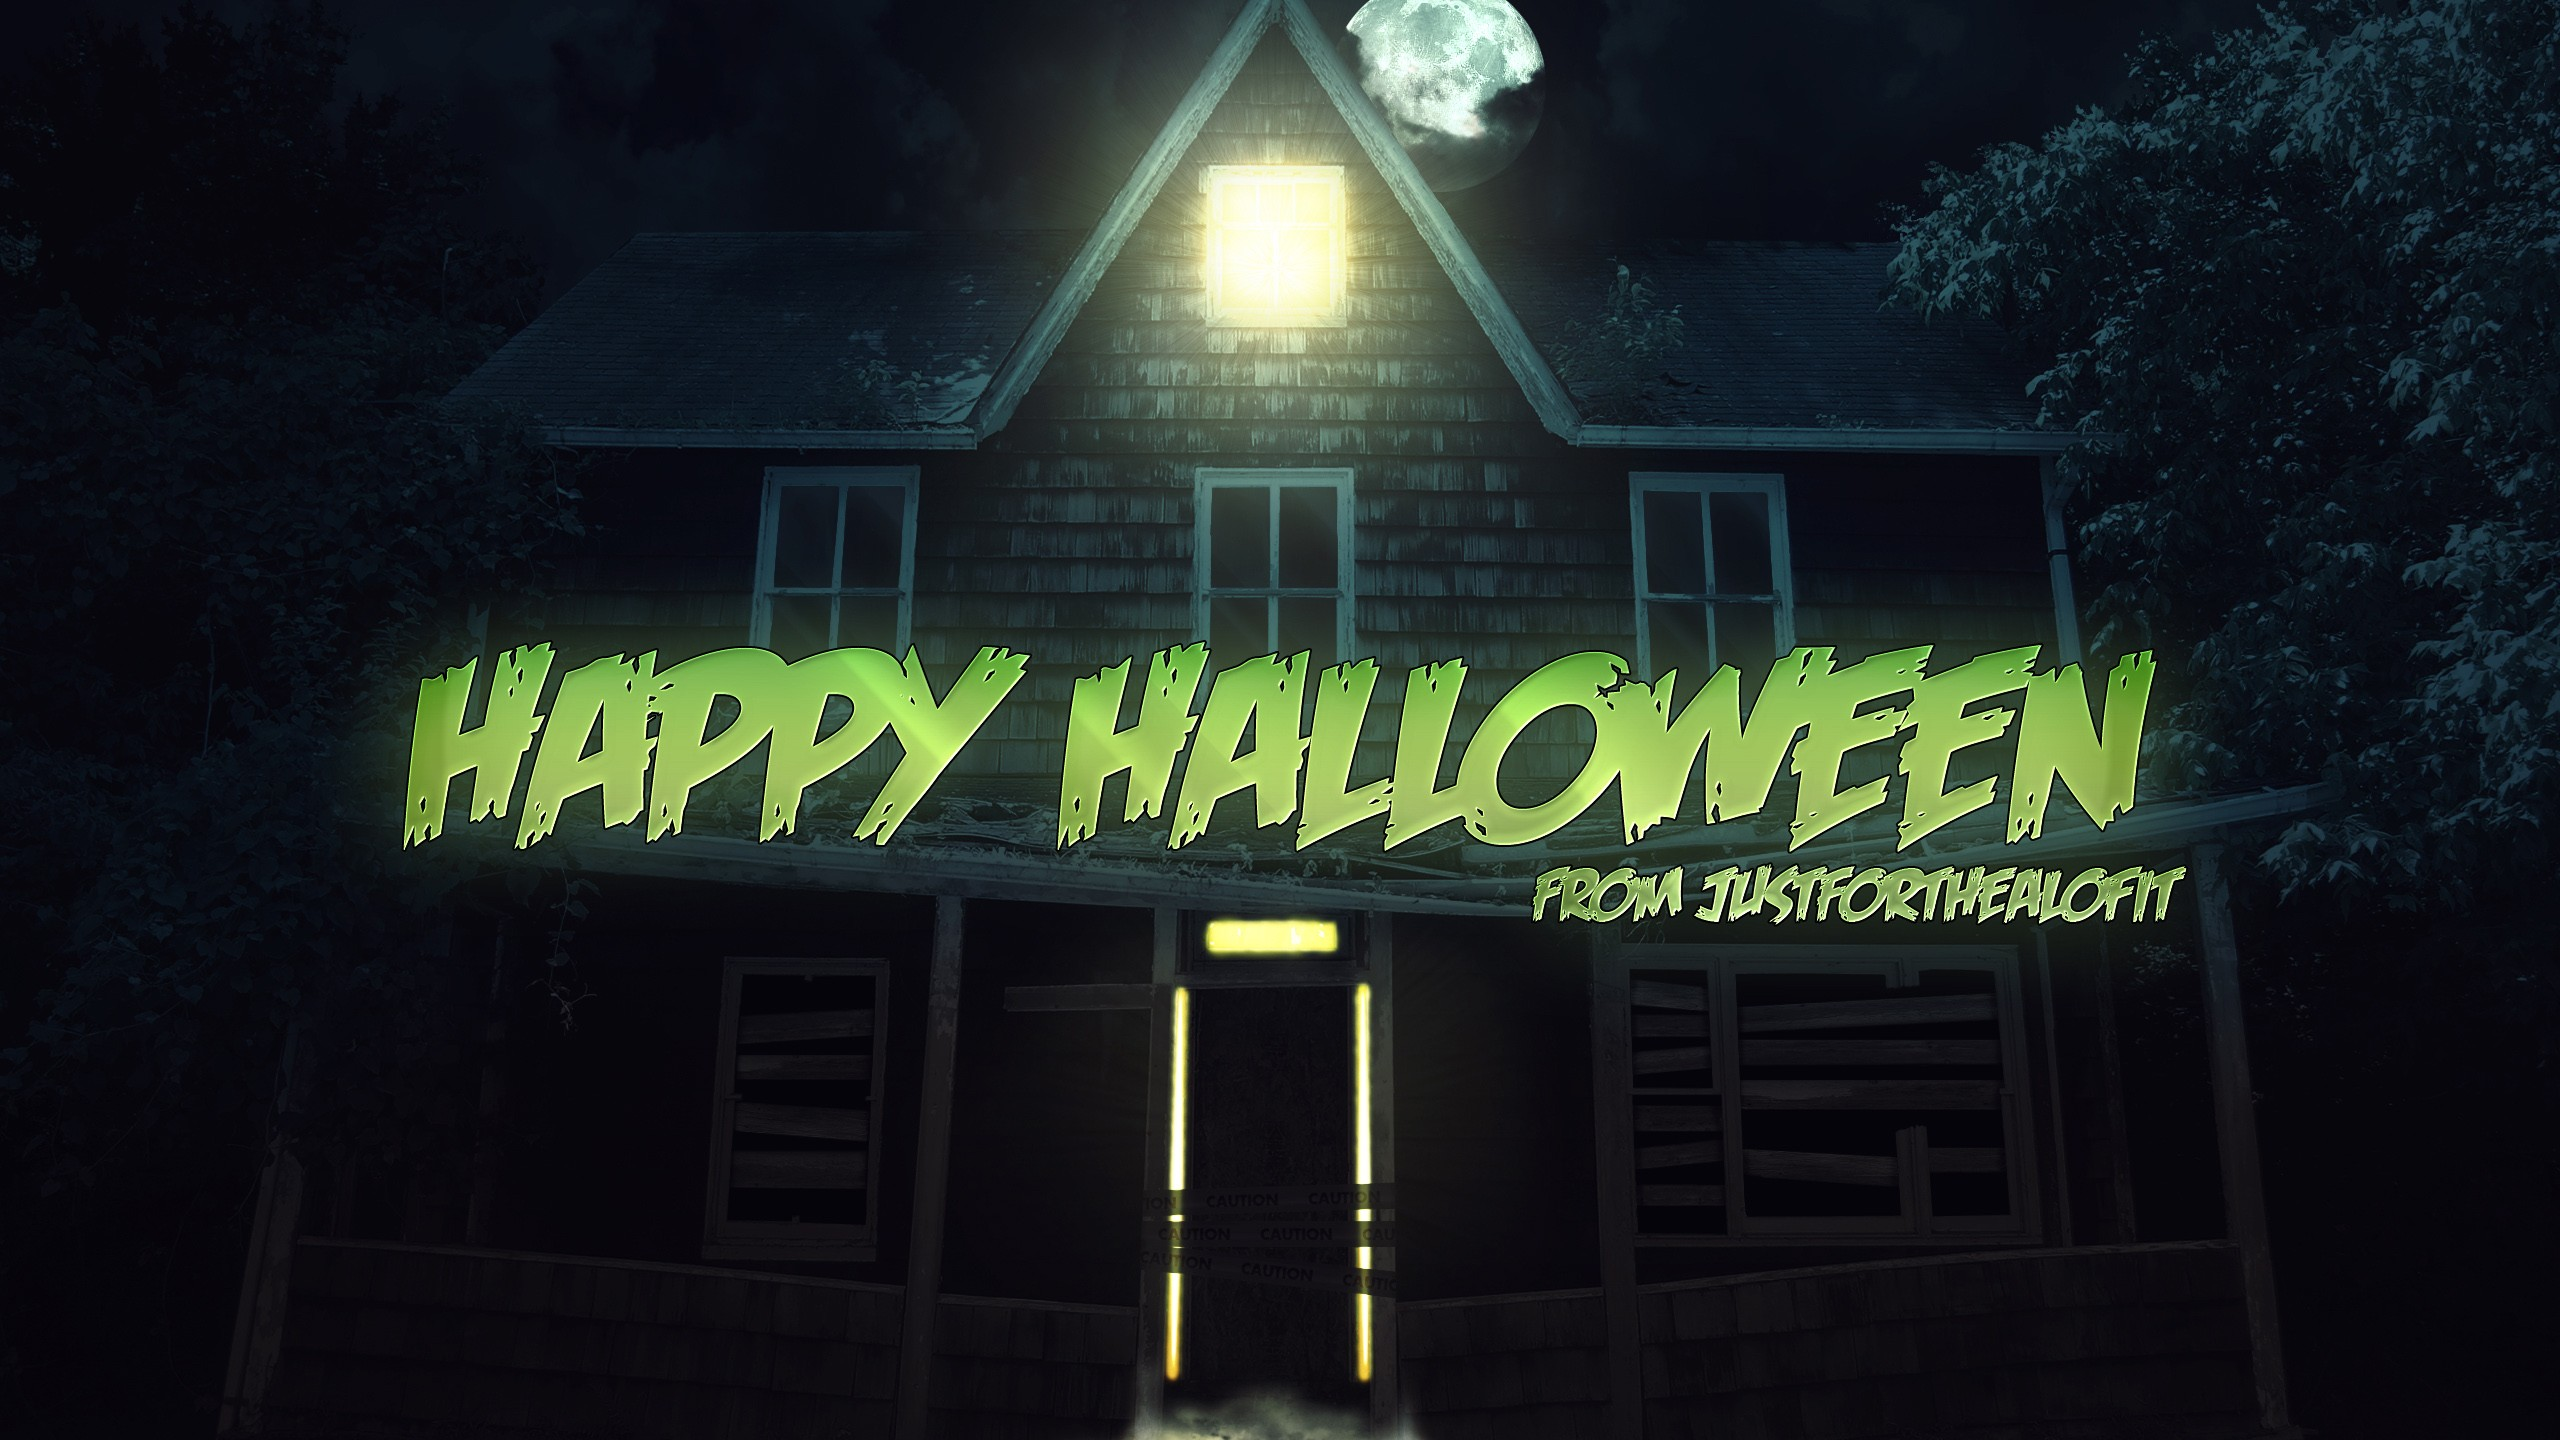 Attractive Happy Halloween Download HD Wallpaper For Dekstop PC 3D Wallpaper Download.  ««